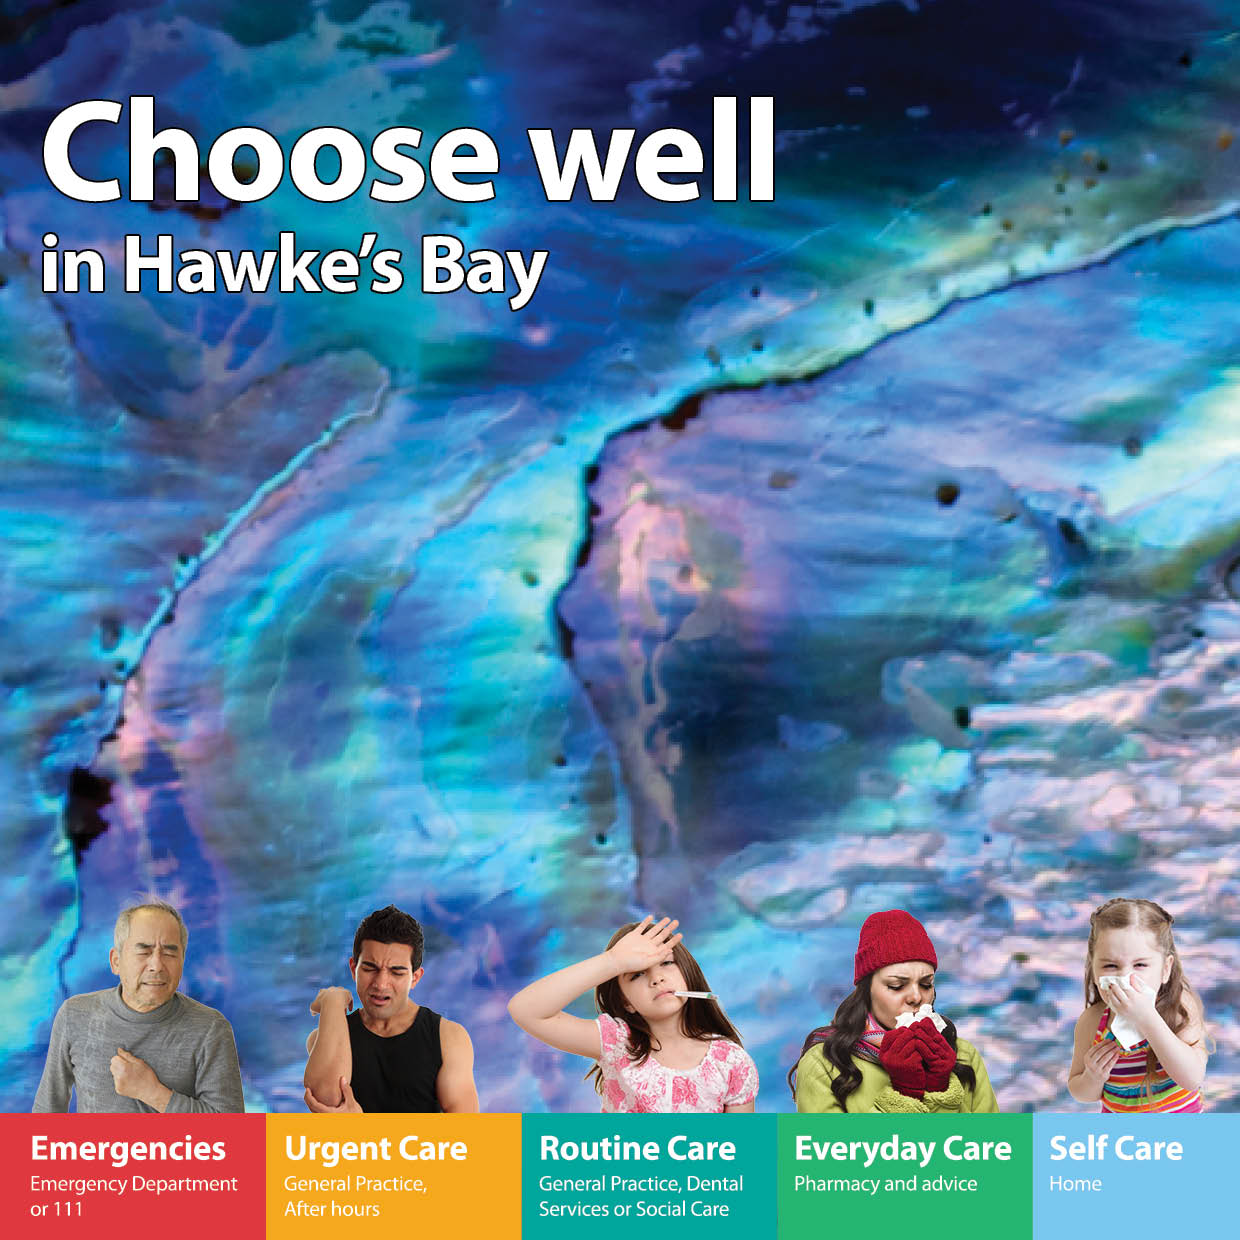 Choose well in hawkes bay te matatini mobile2